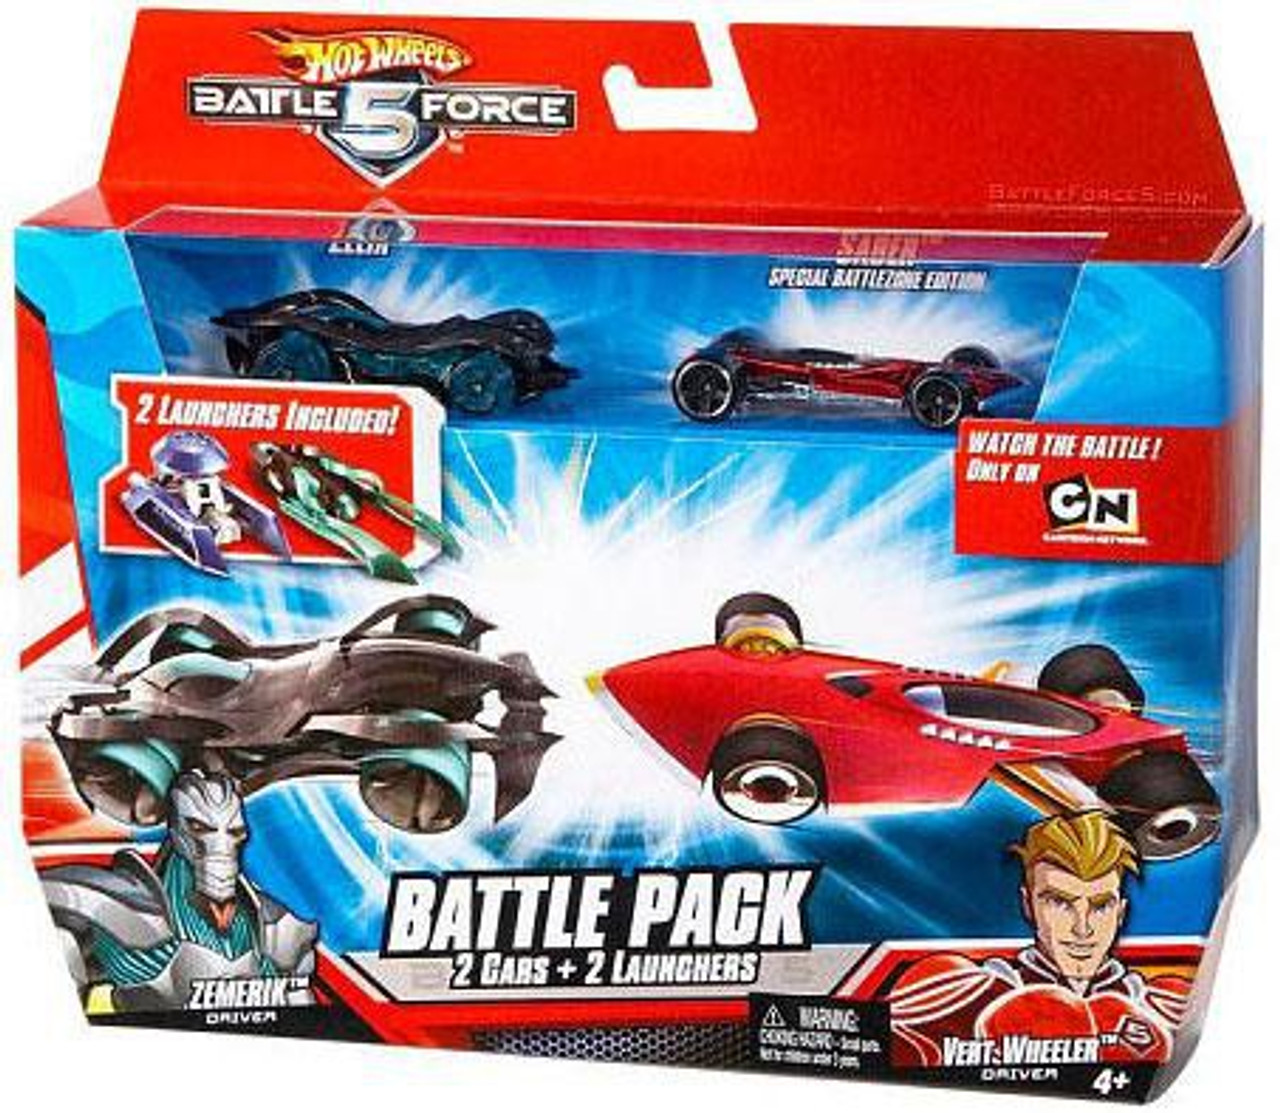 Hot Wheels Battle Force 5 Battle Pack Zelix & Special Battlezone Edition Saber 1/6 Diecast Car 2-Pack